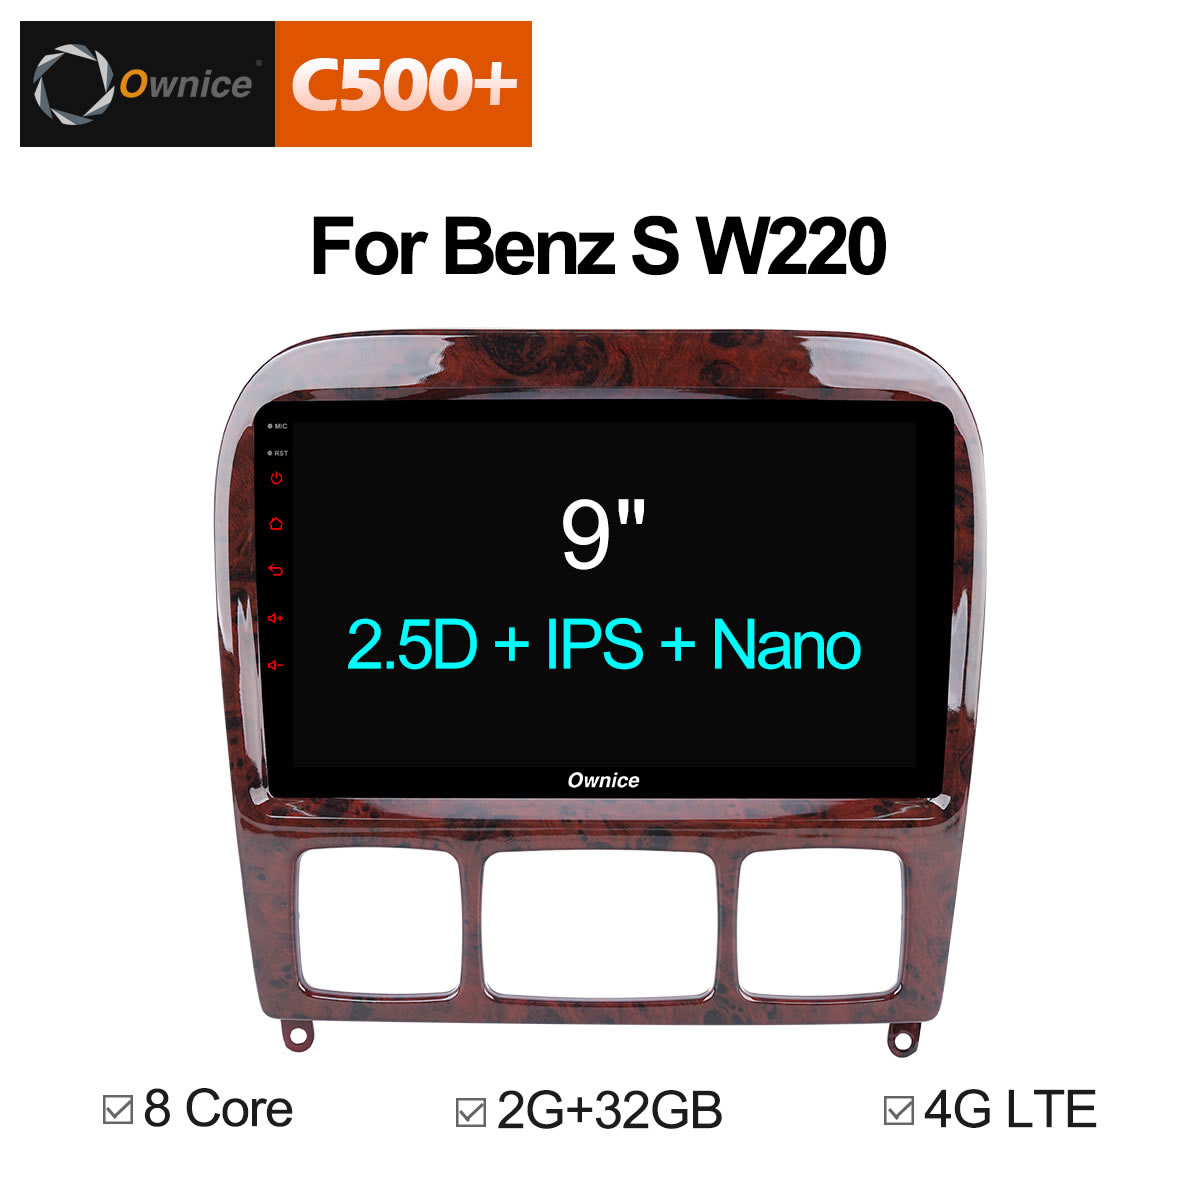 все цены на Ownice C500+ G10 Android 8.1 Car Multimedia Player dvd automotivo Radio GPS 2 din For Mercedes/Benz/S320/S350/W220/W215/CL600 4G